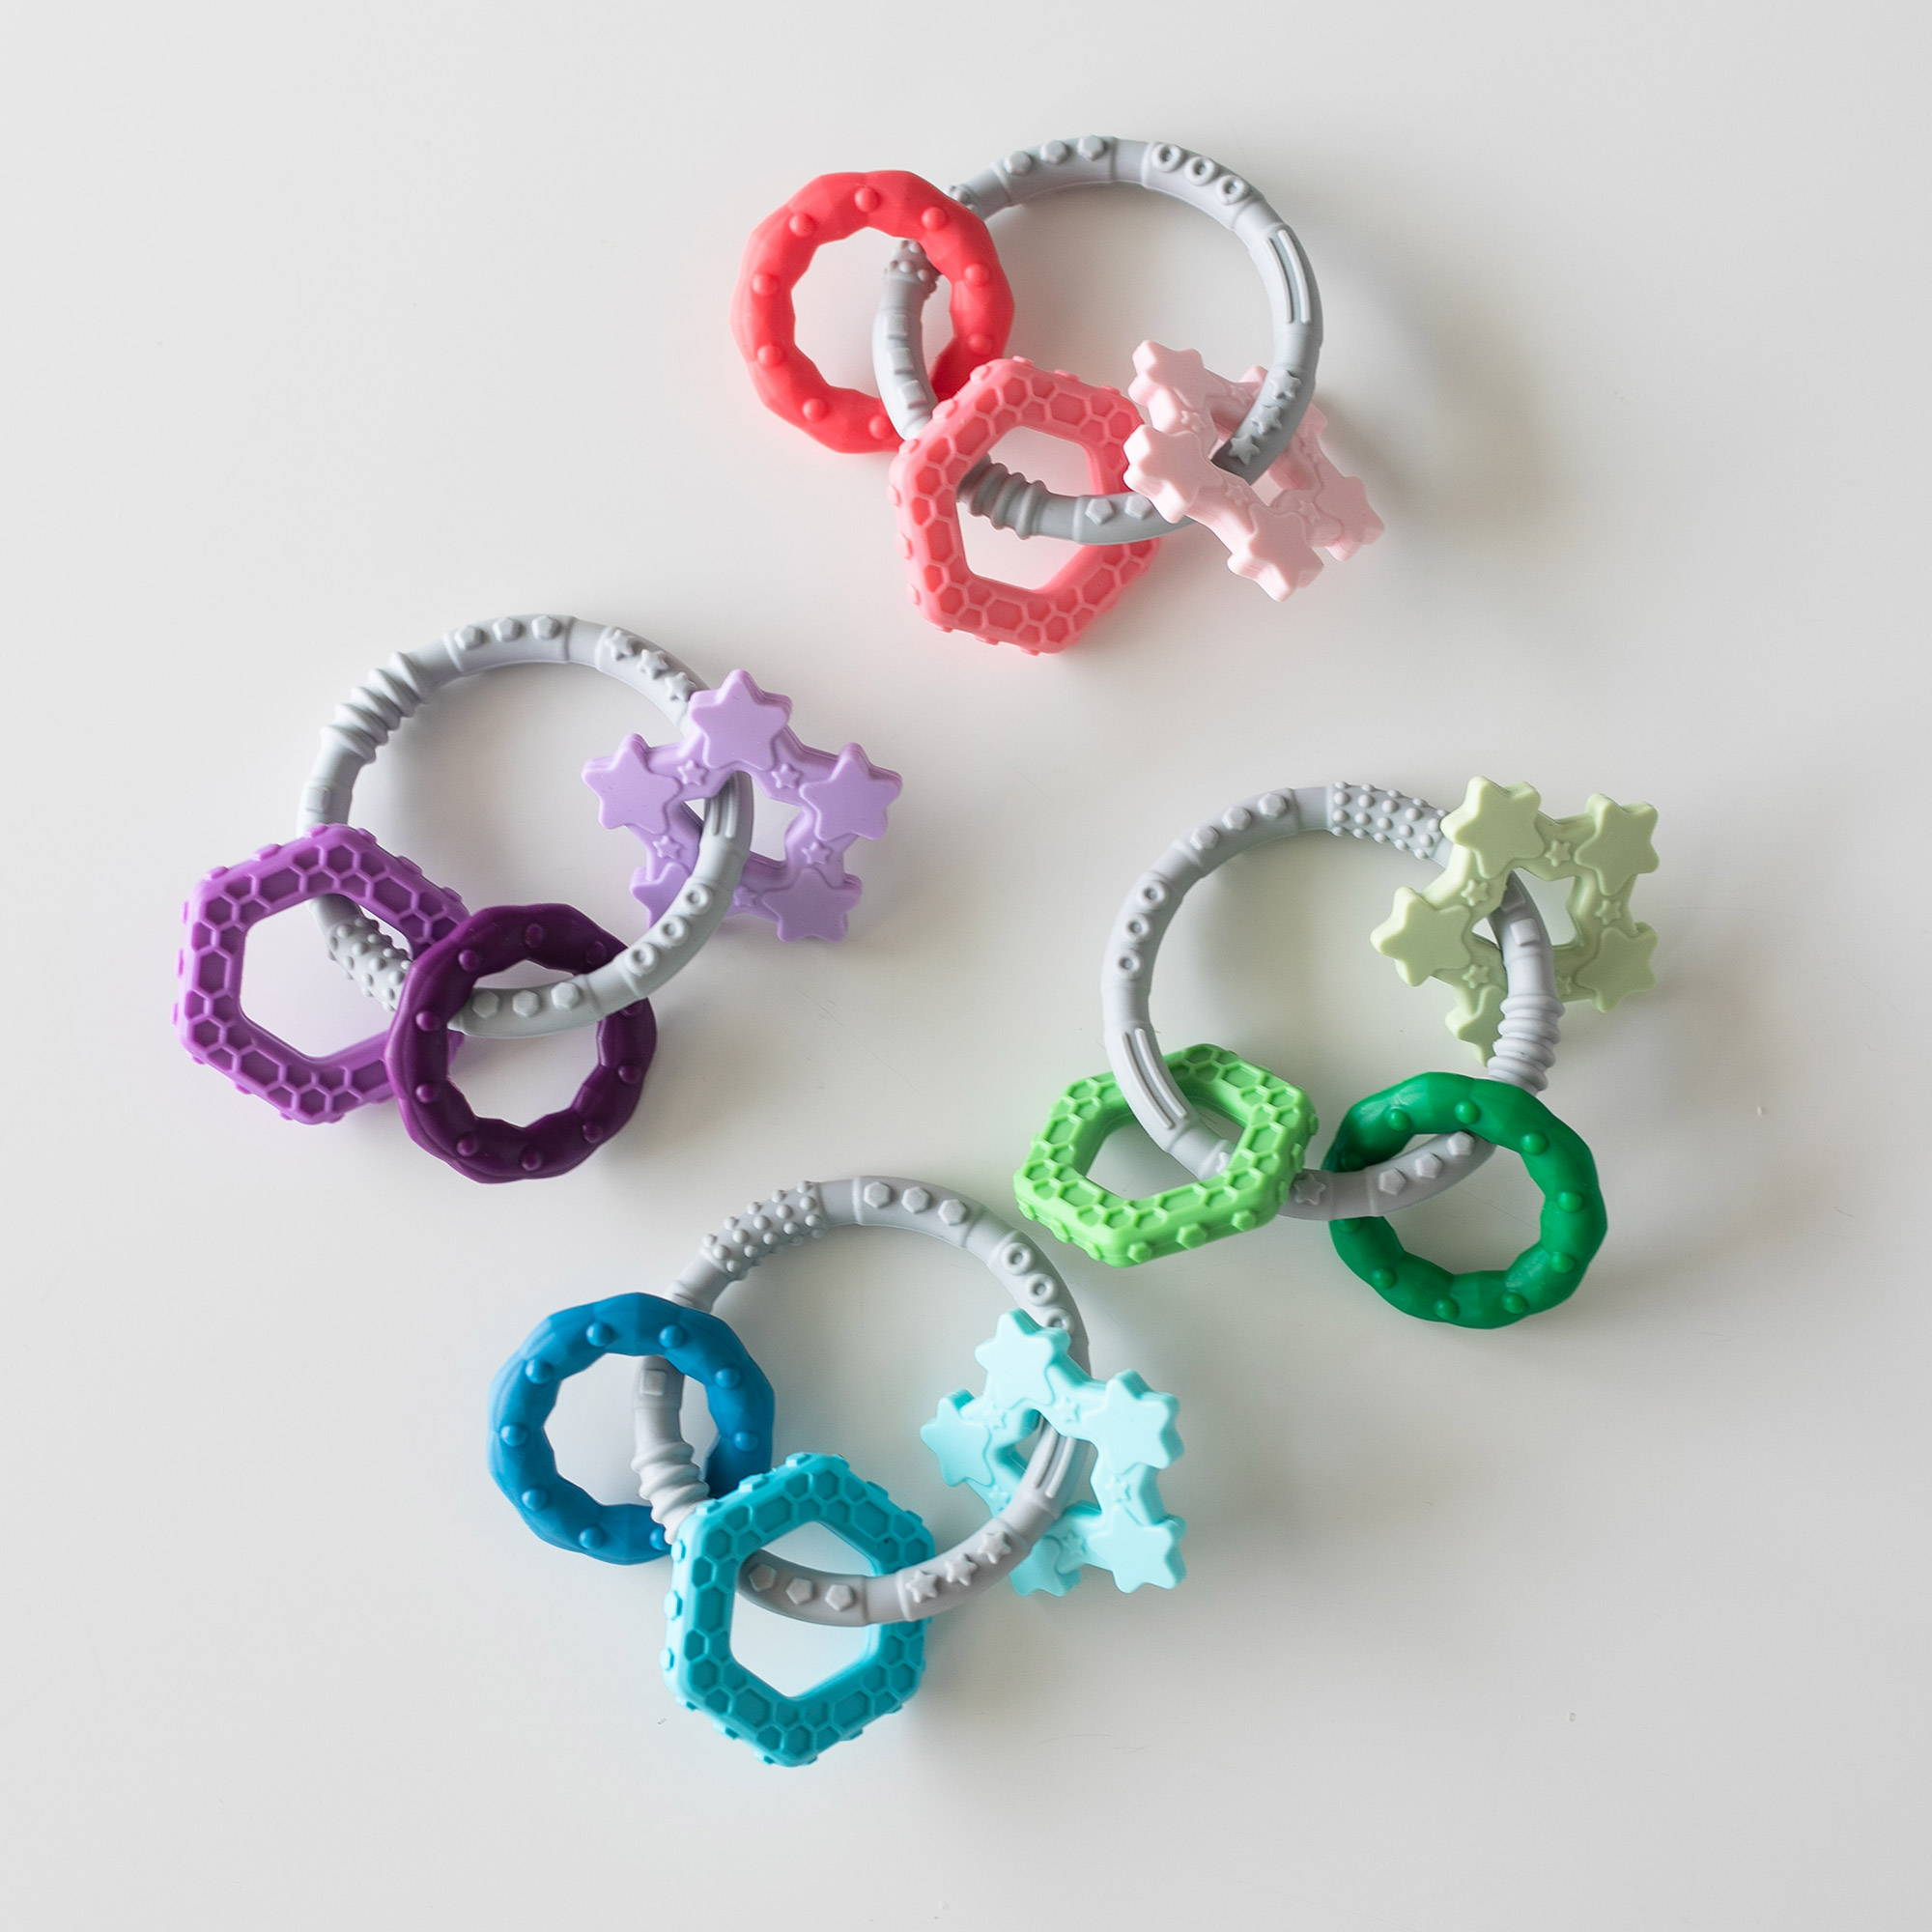 green, blue, purple, and pink shaped textured baby teethers